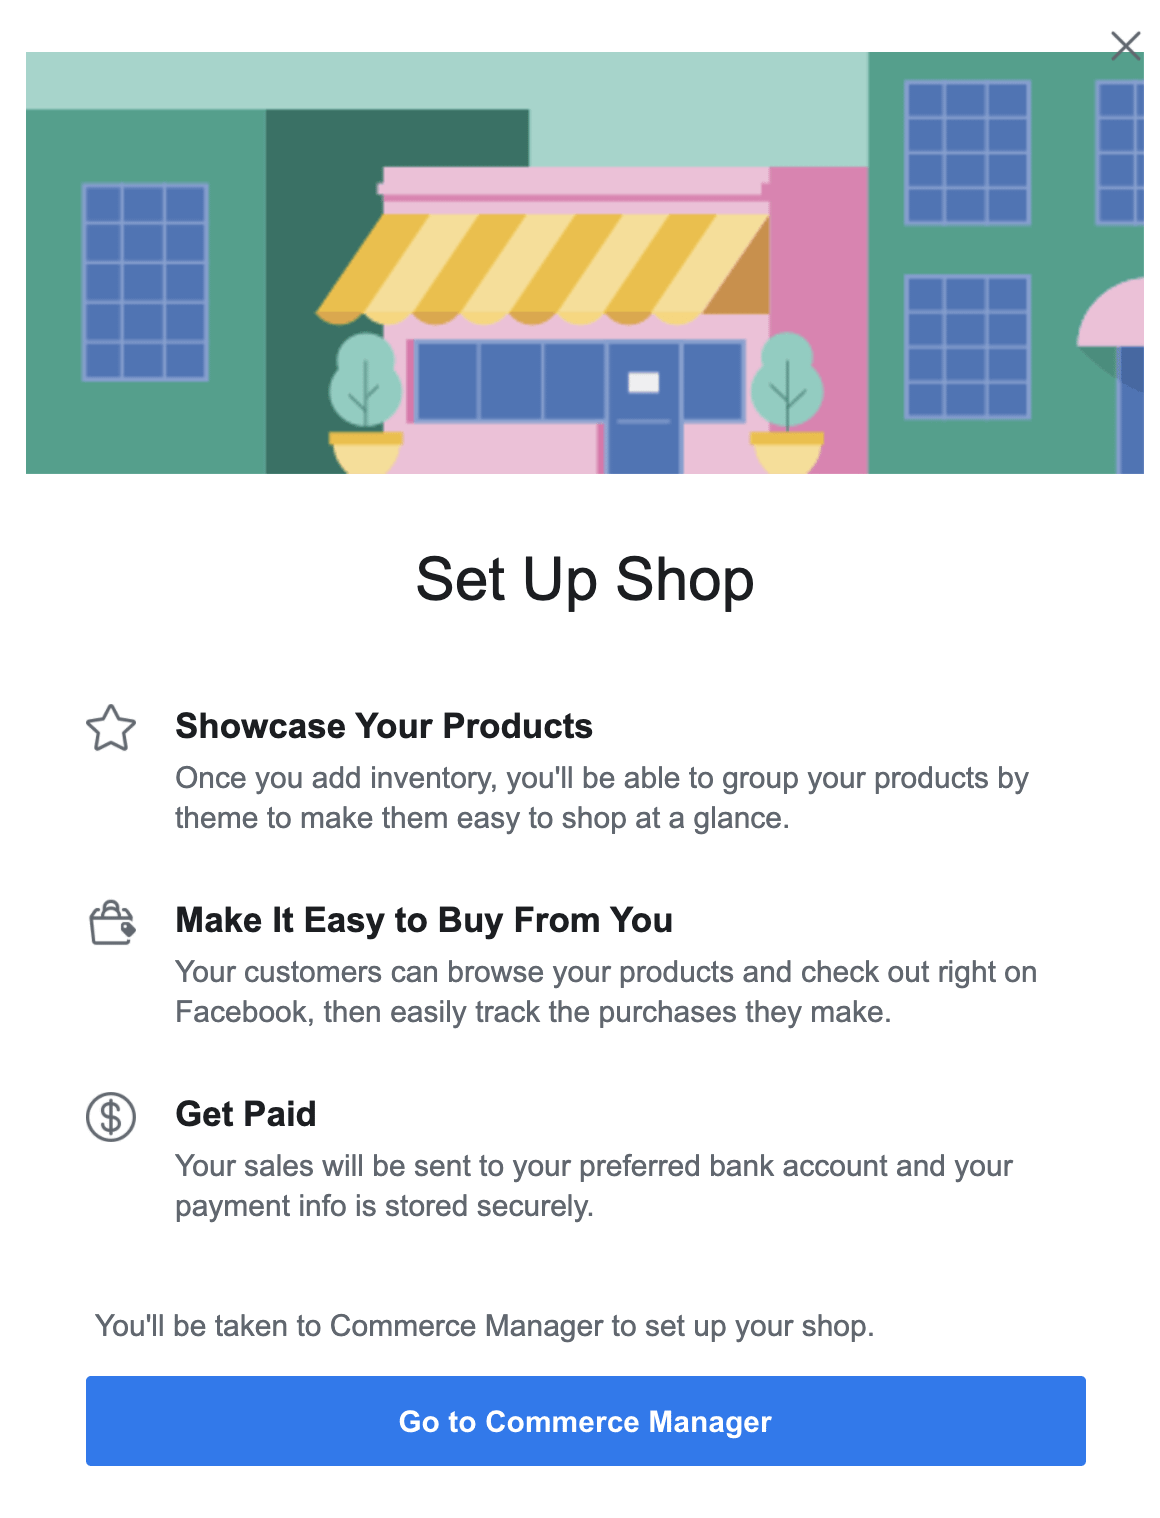 If you haven't set up a shop already, when you click shop from your page menu, you'll see this pop up. You may have to change your page type to access the shop link.